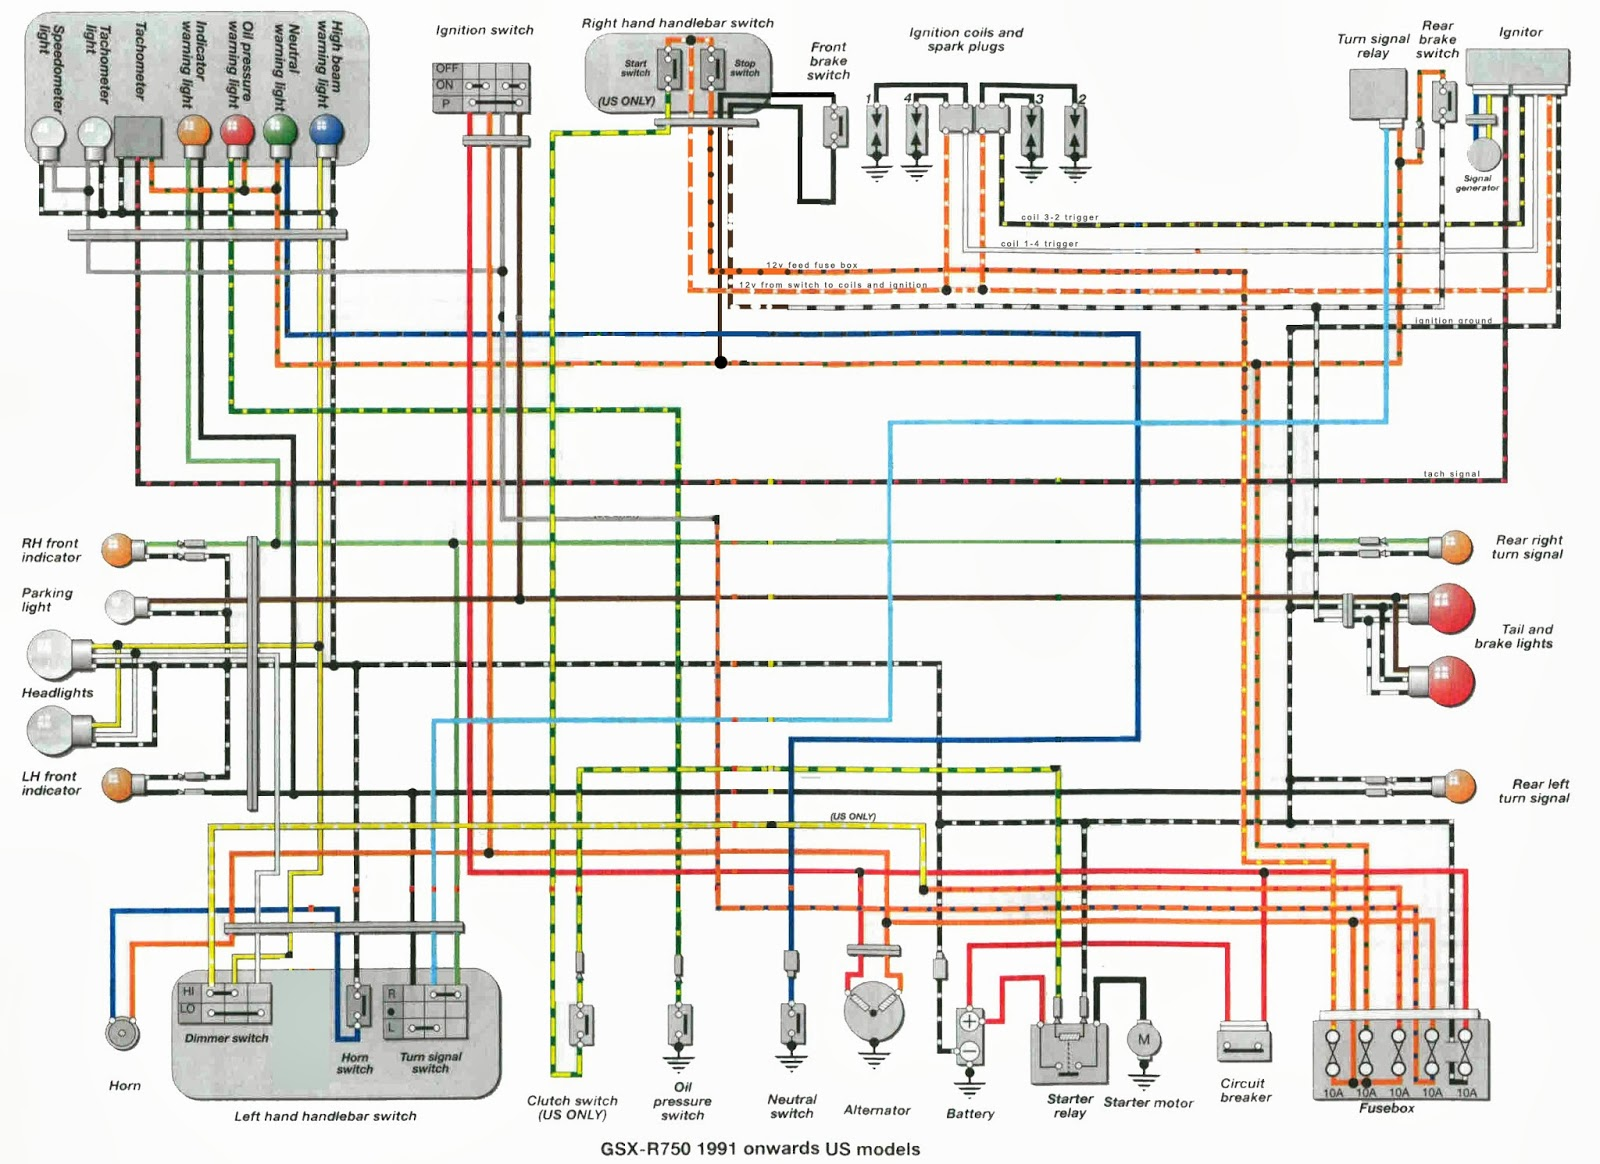 2012 Bmw 750 Wiring Diagram ~ Wiring Diagram Portal ~ \u2022 BMW Planet Wiring  Diagrams Bmw 323i Wiring Harness Diagram